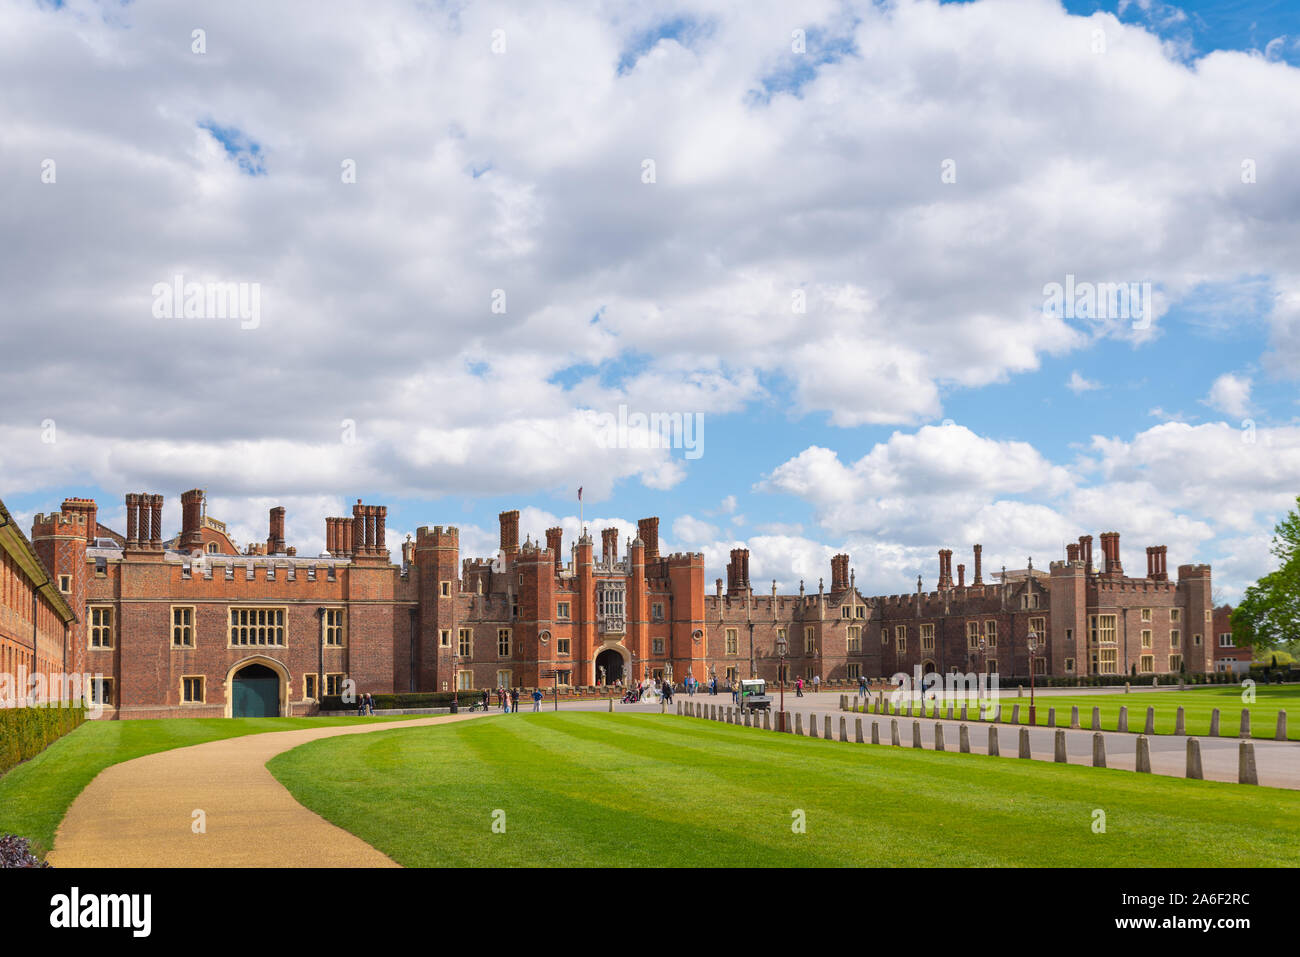 Main entrance to Hampton court Palace on a sunny and cloudy day Stock Photo